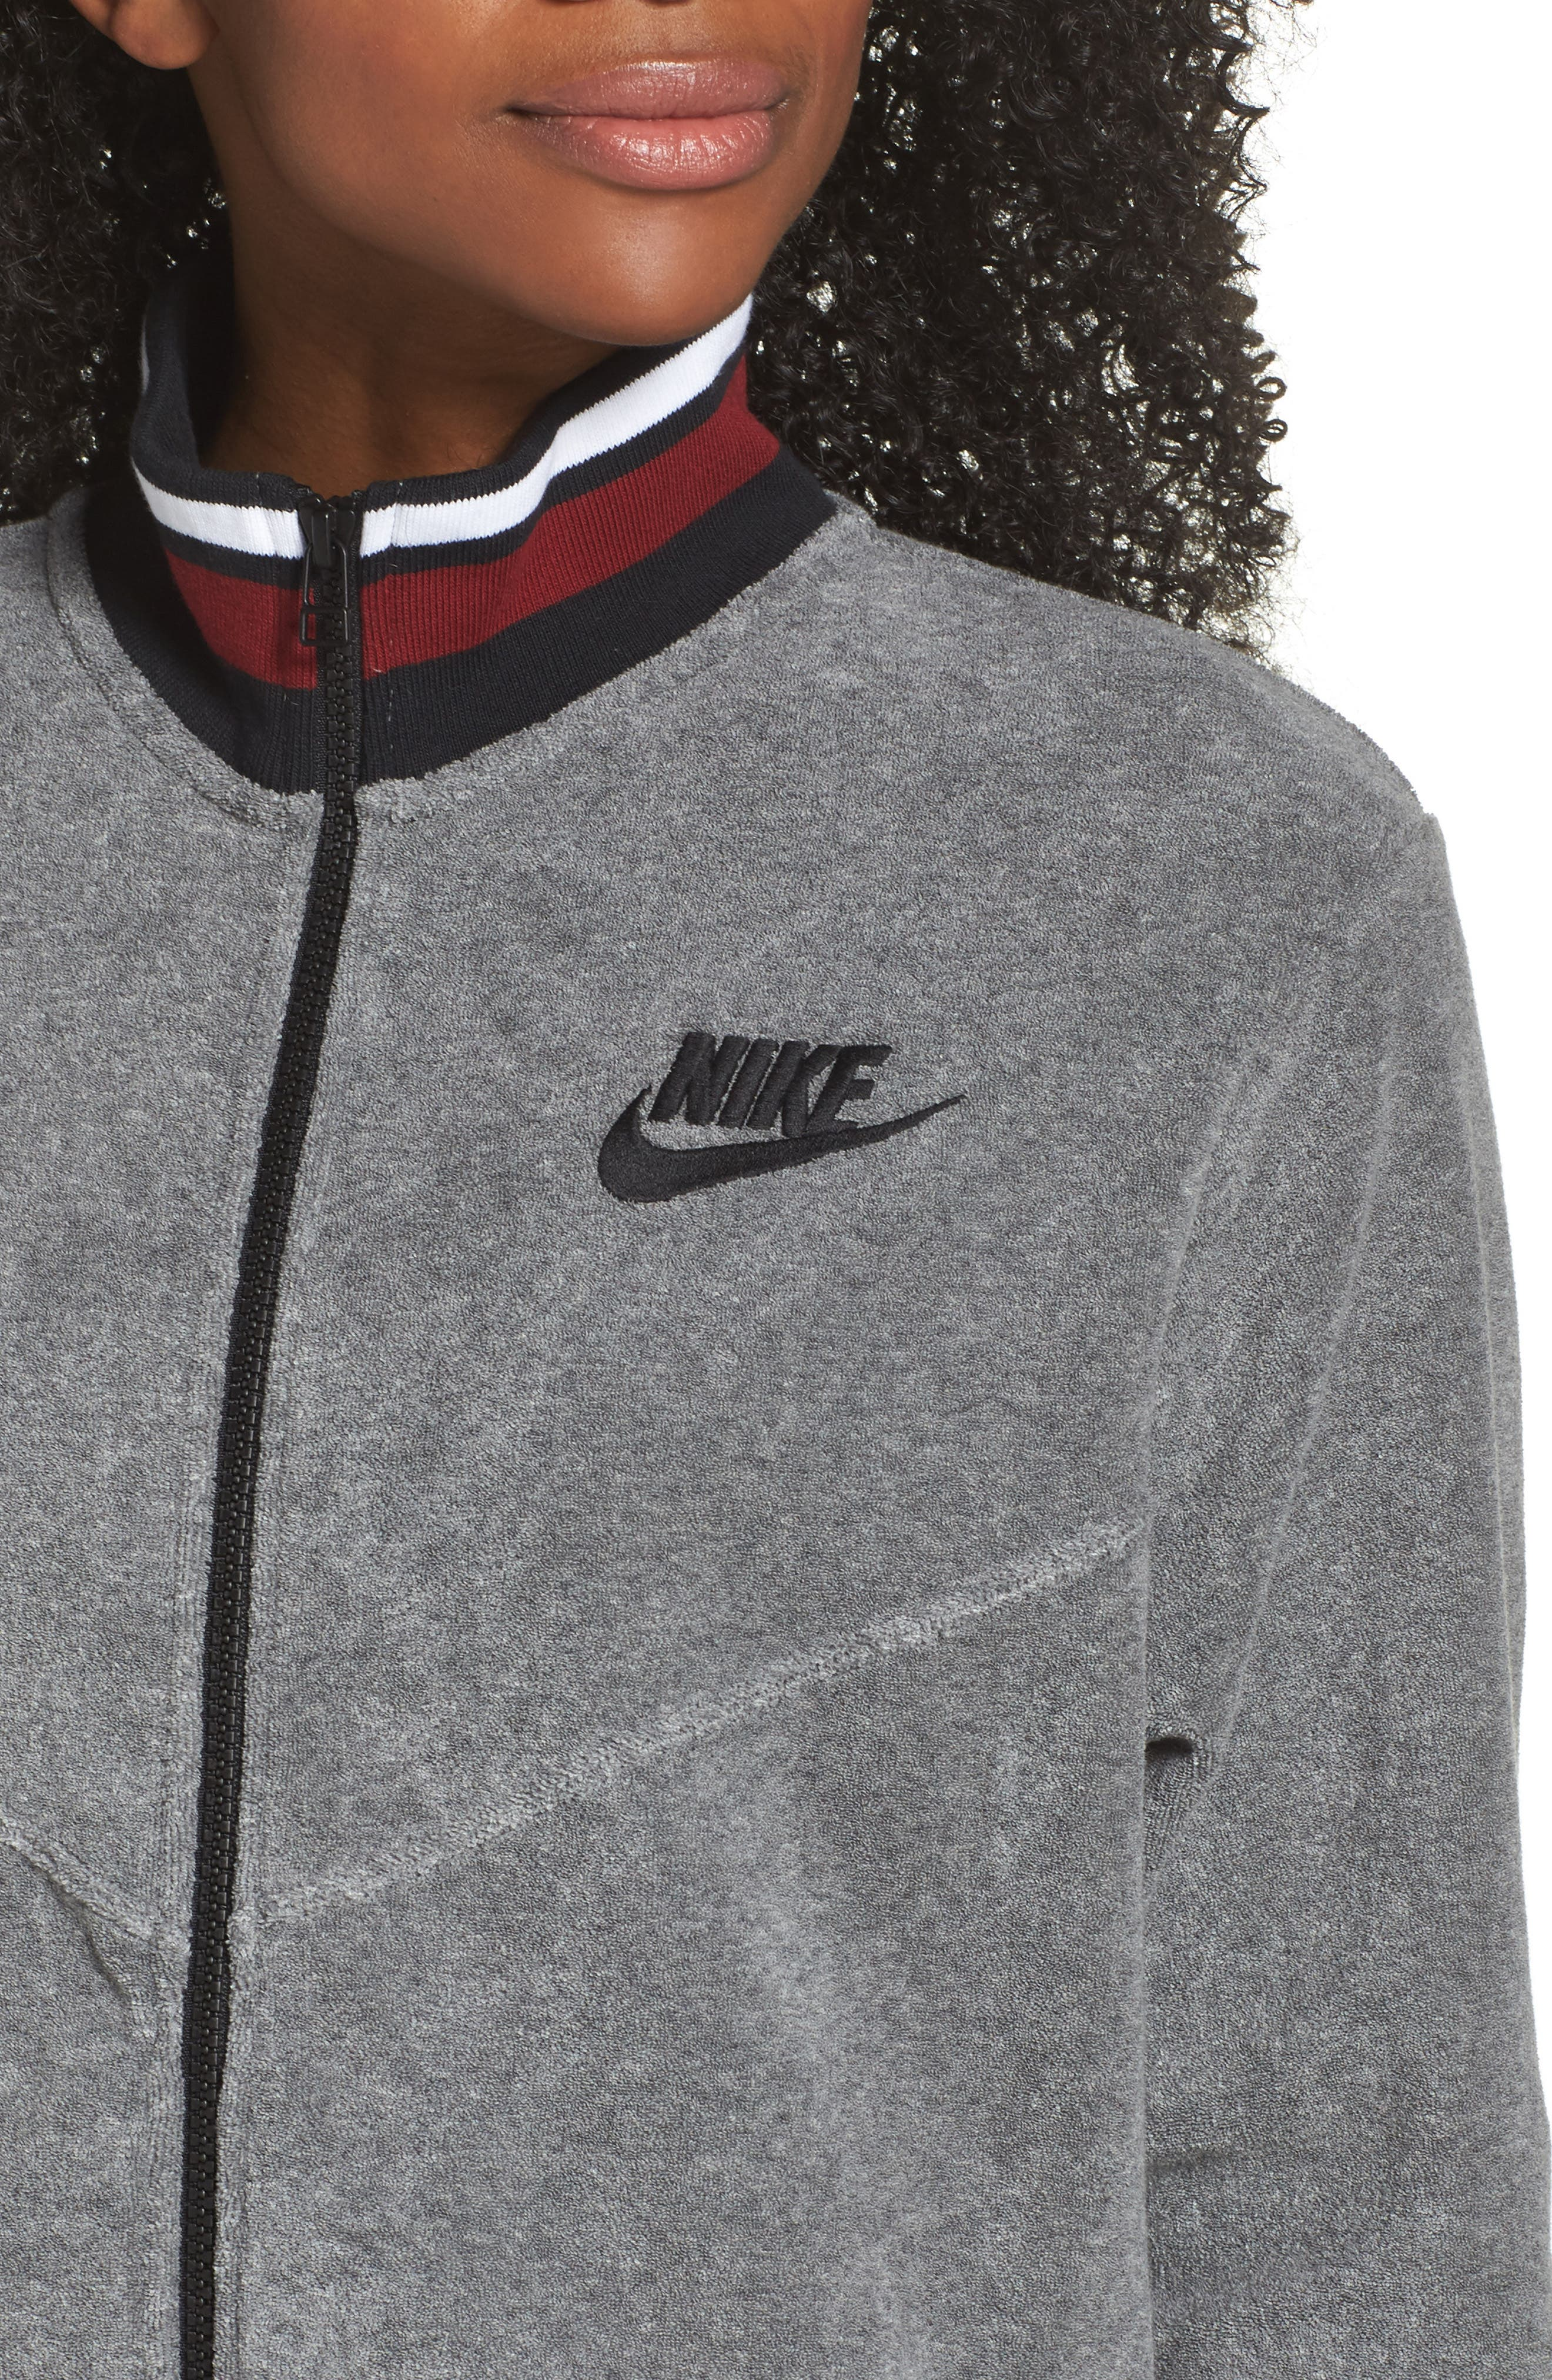 Sportswear French Terry Jacket,                             Alternate thumbnail 4, color,                             Heather/ Anthracite/ Team Red